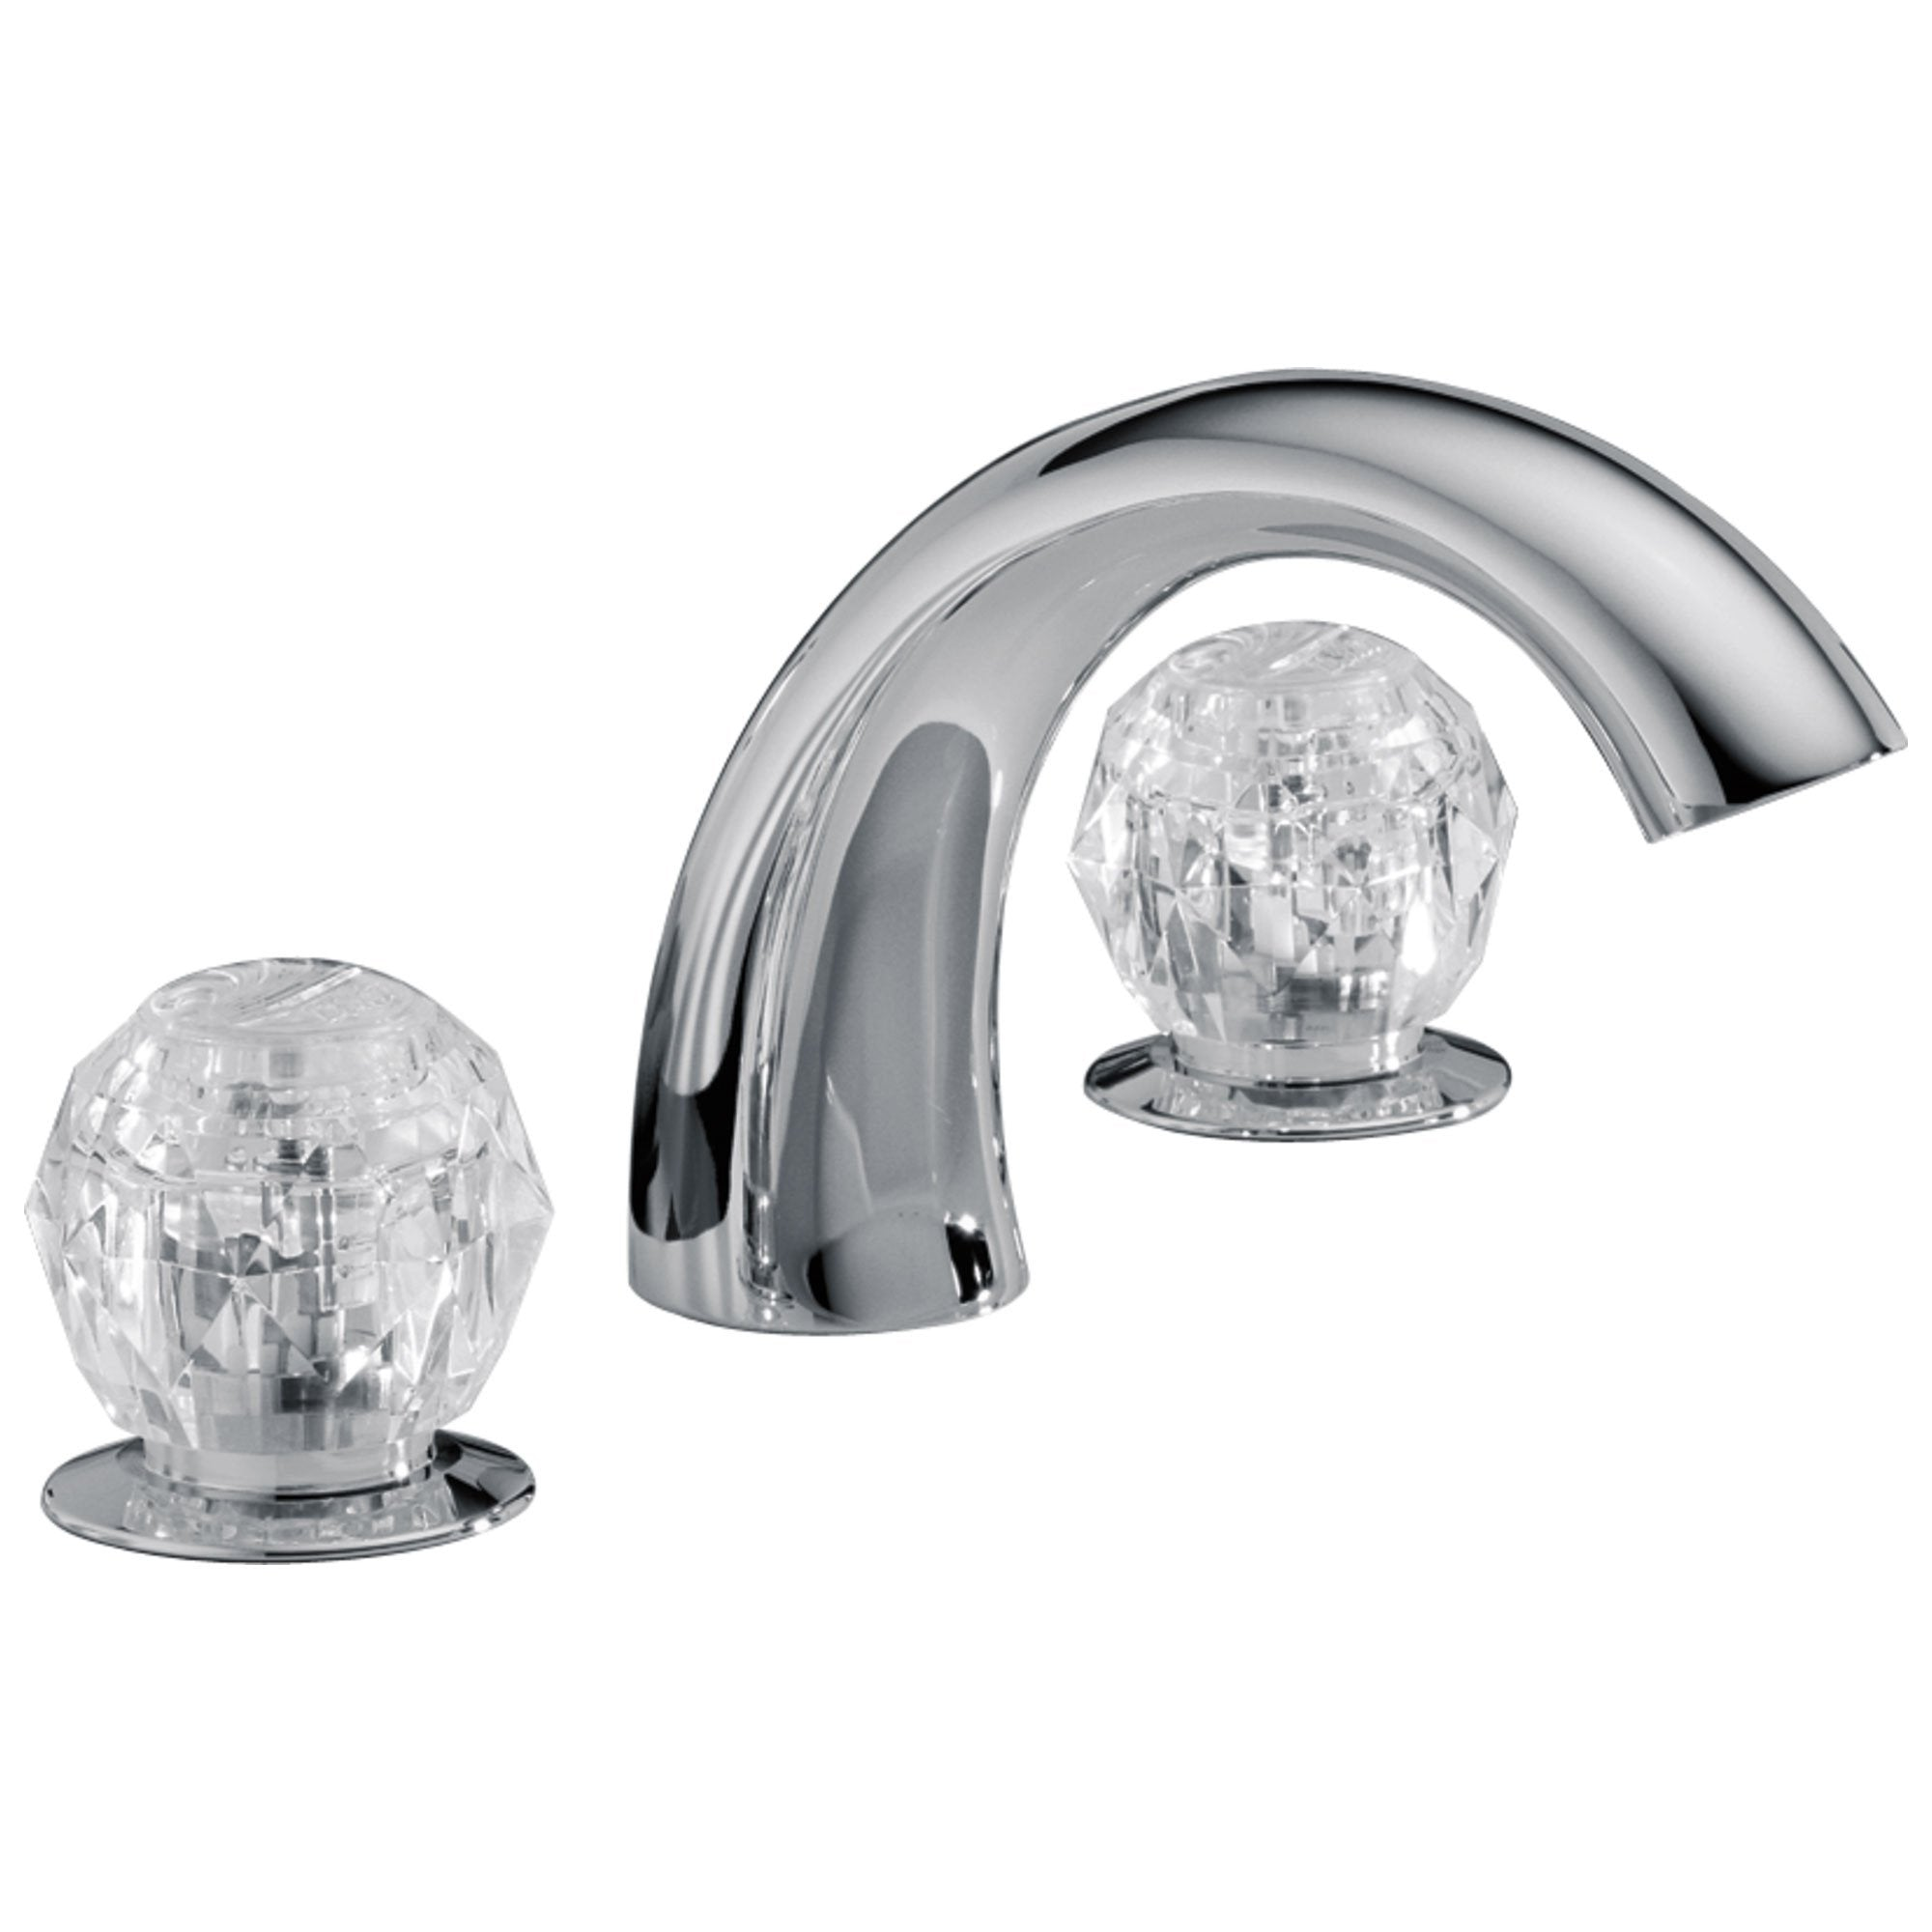 Delta Chrome Finish Roman Tub Filler Faucet Complete Fixture Includes Trim Kit and Rough-in Valve 655018